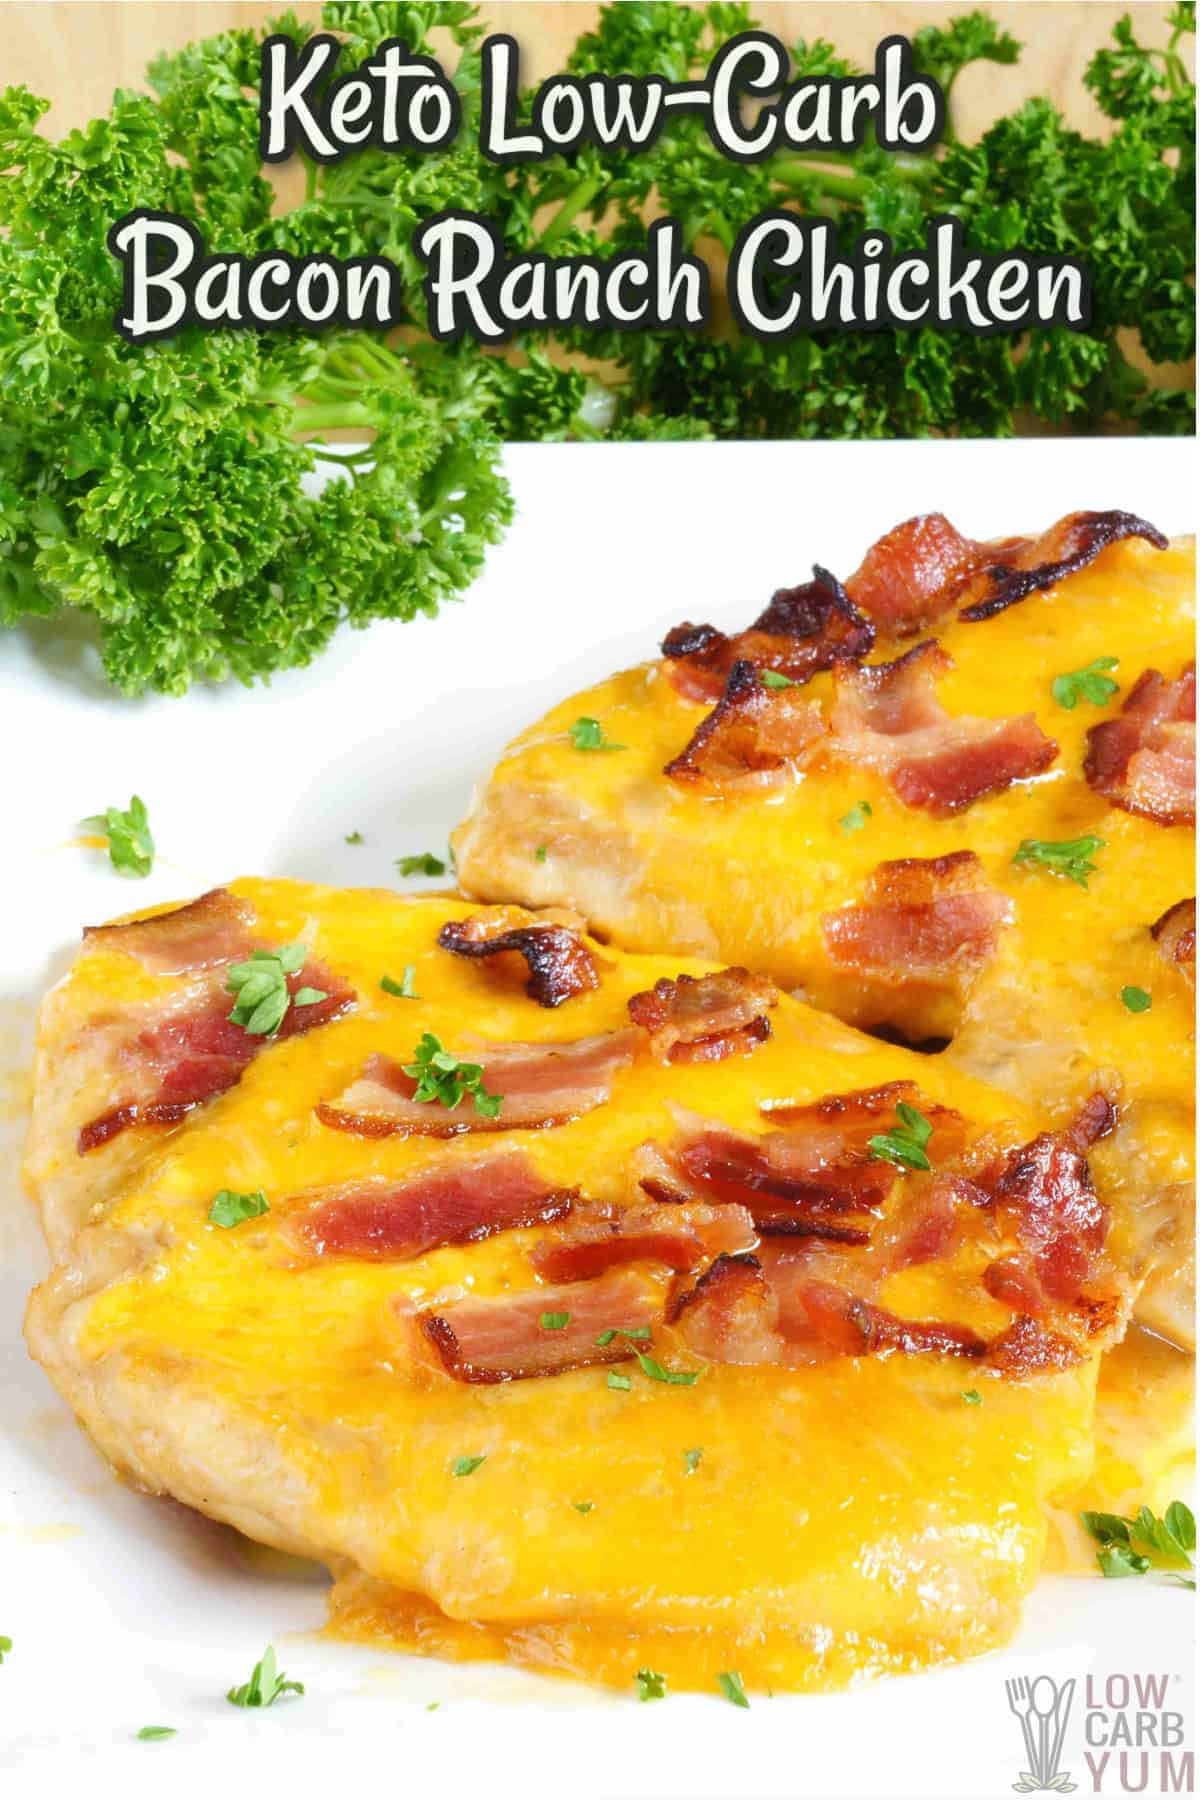 cover image for bacon ranch chicken recipe